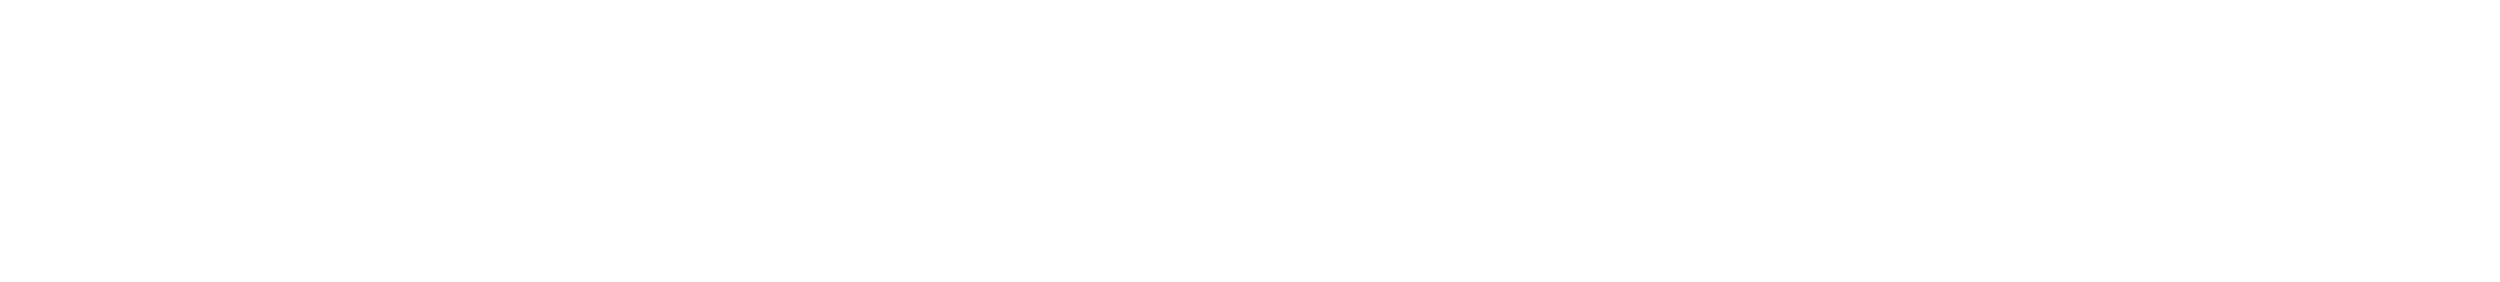 demimonde_logo_white_thicker.png